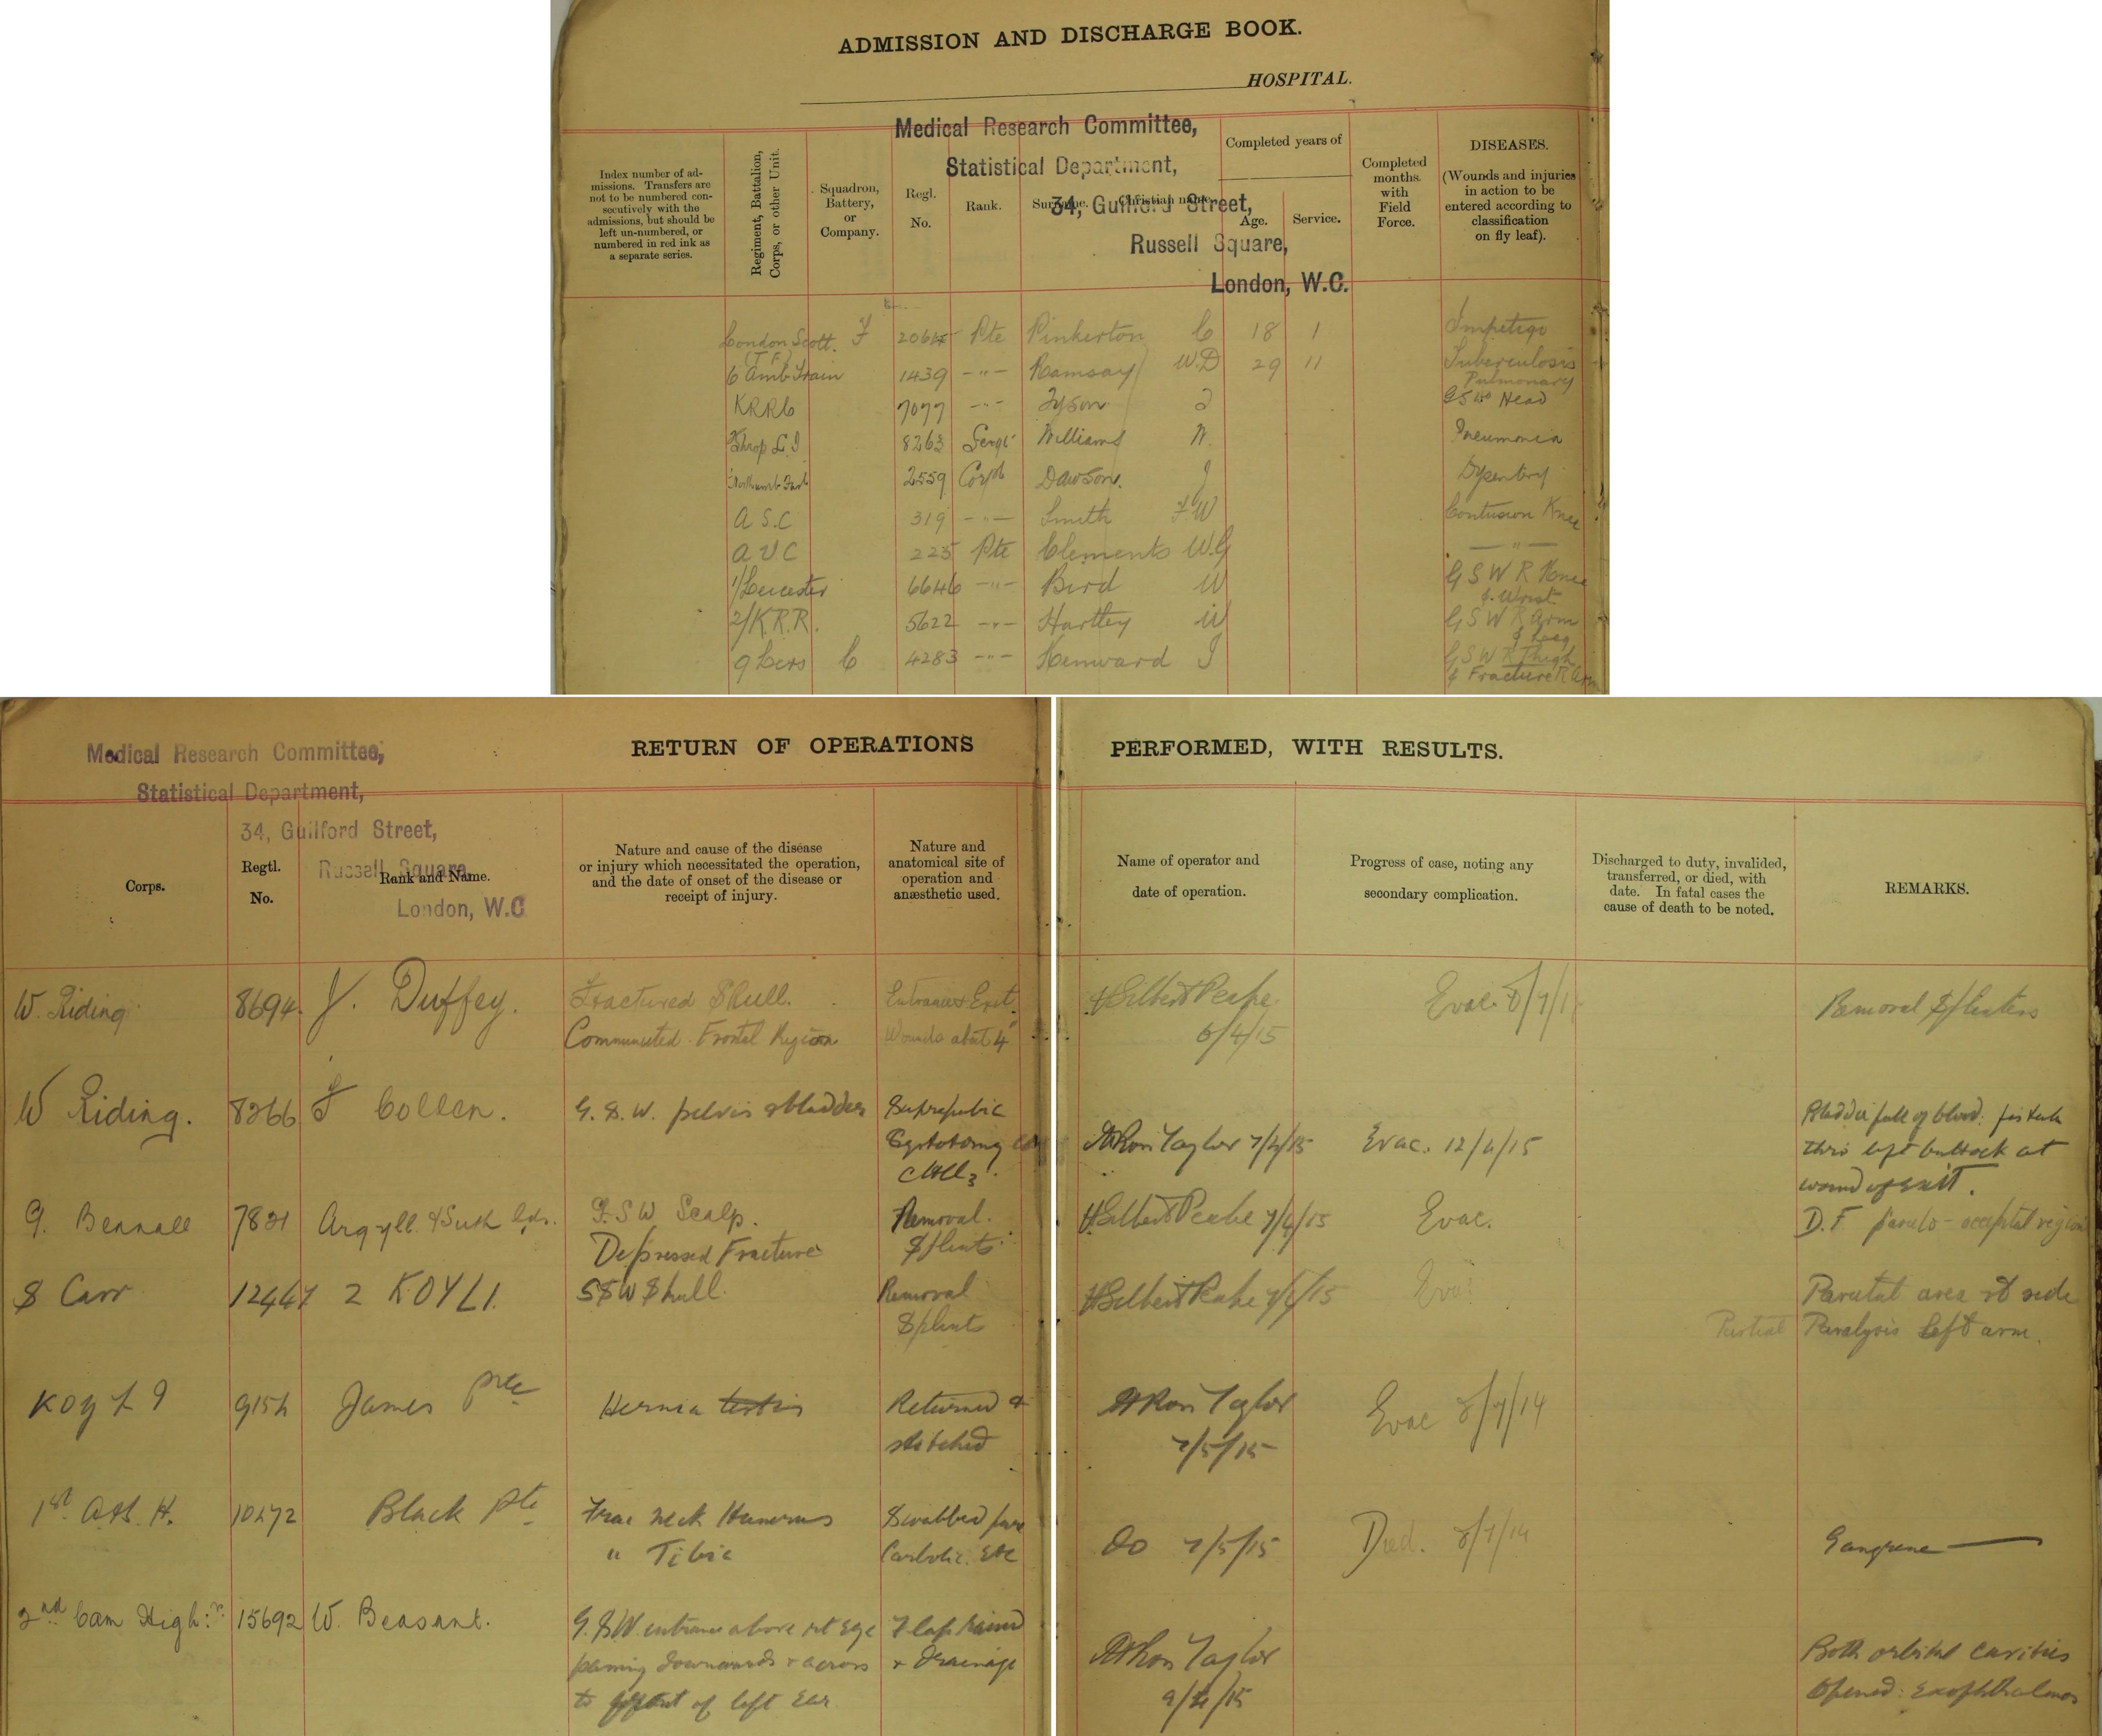 MH106/279 Extracts from admission and discharge lists